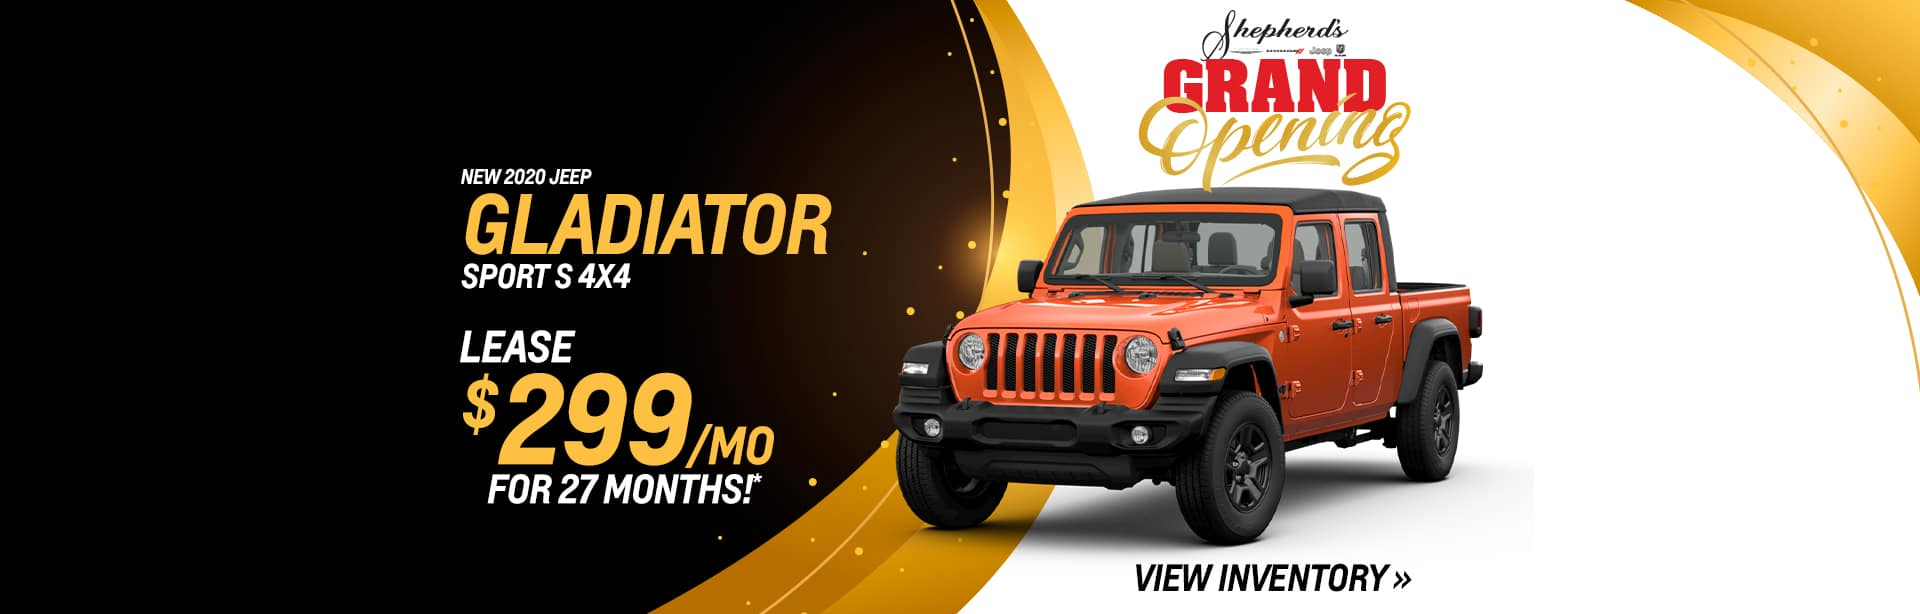 Lease an all New Gladiator for $299 a month near Fort Wayne, Indiana